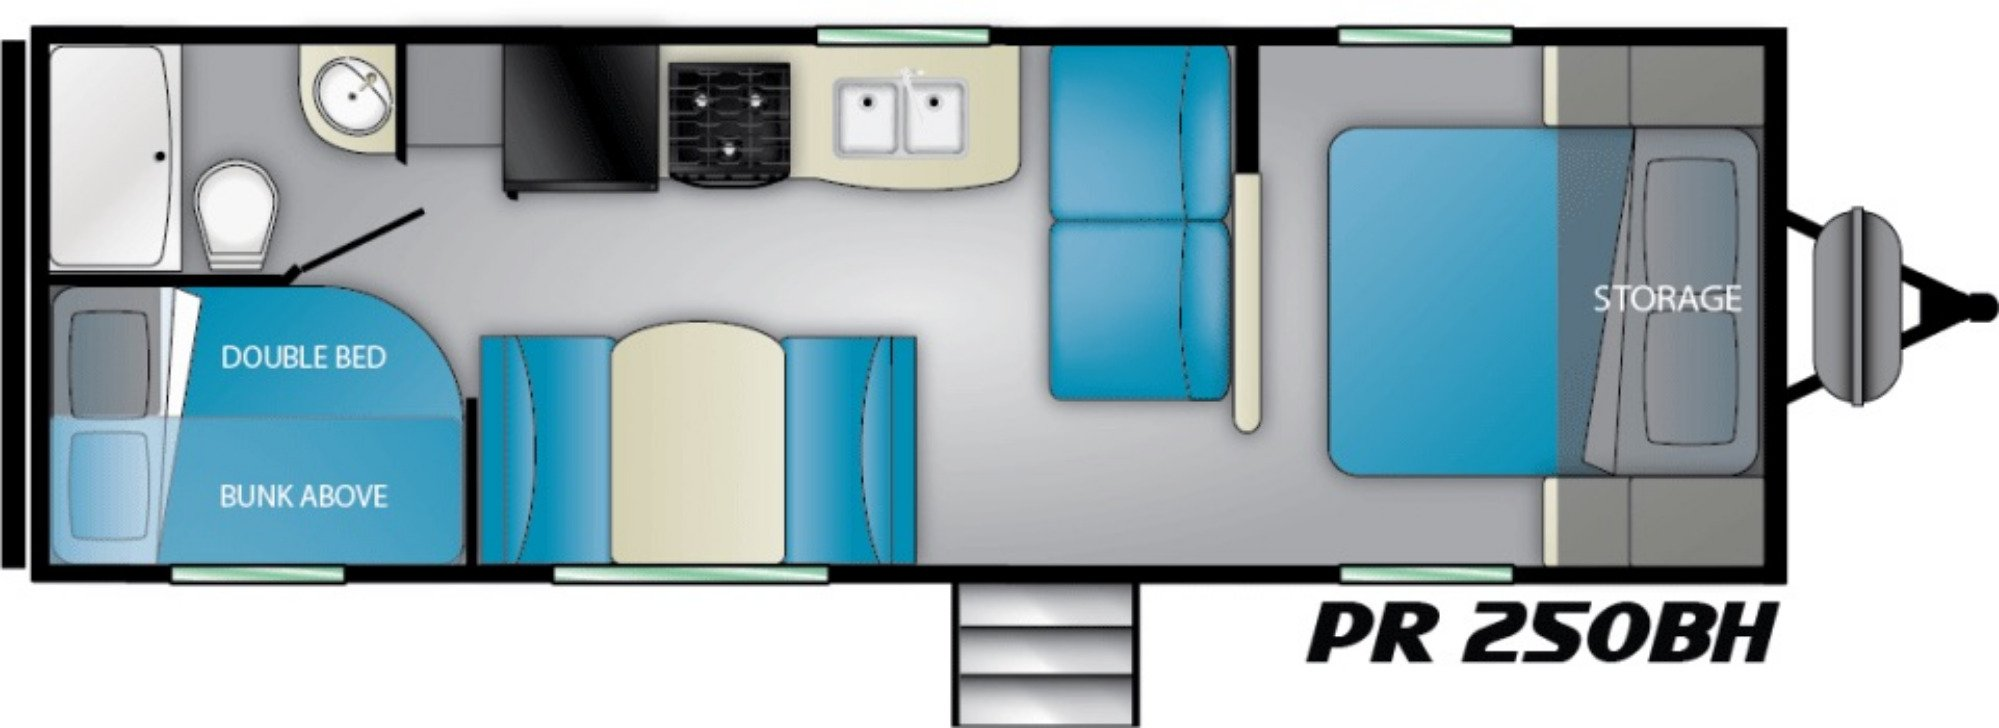 View Floor Plan for 2021 HEARTLAND PROWLER 250BH